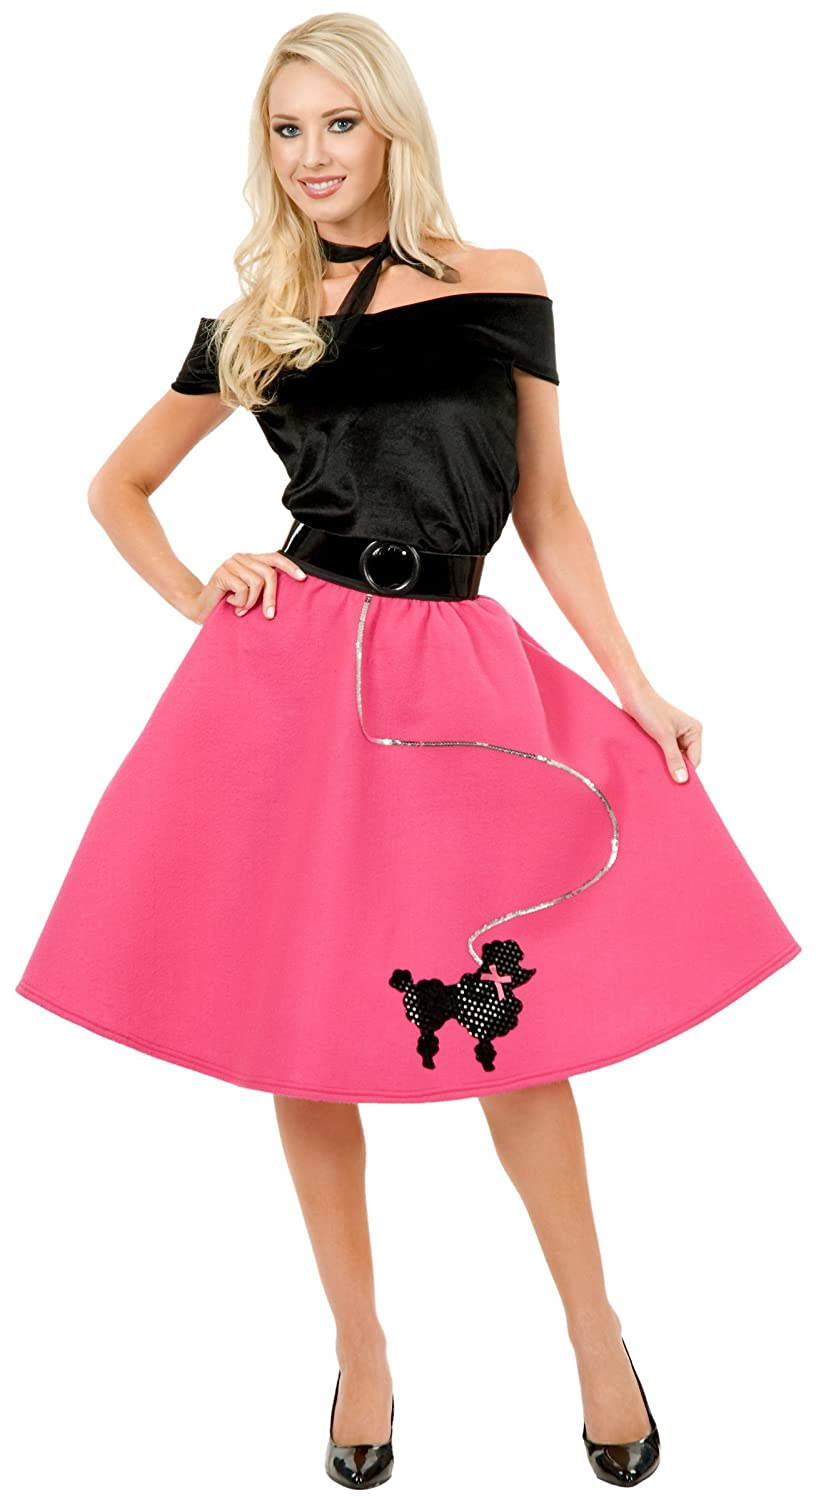 0649359fb4a3 Amazon.com: Poodle Skirt Teen/Junior Costume - Teen: Clothing